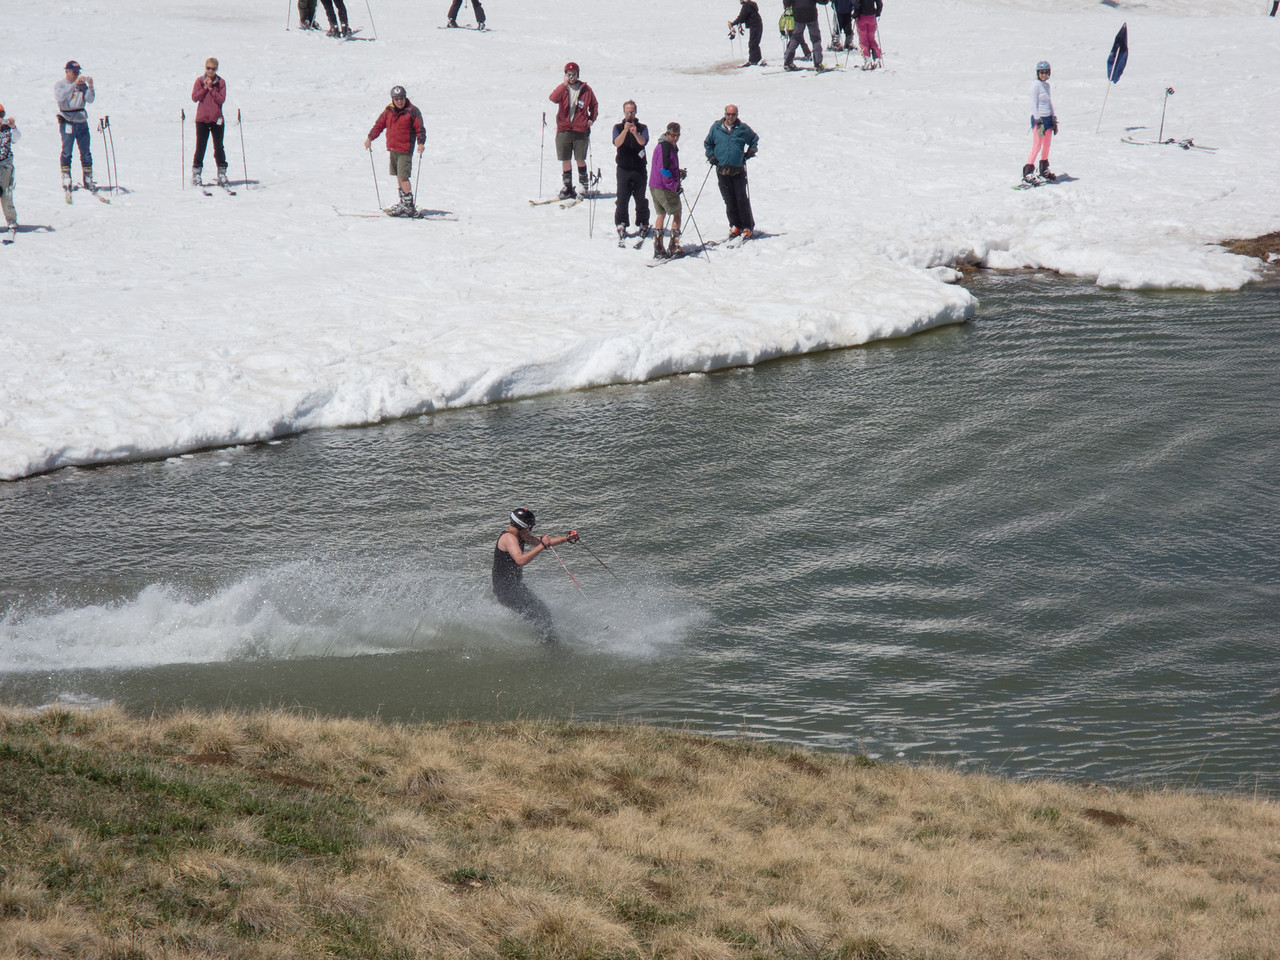 Skiing the pond